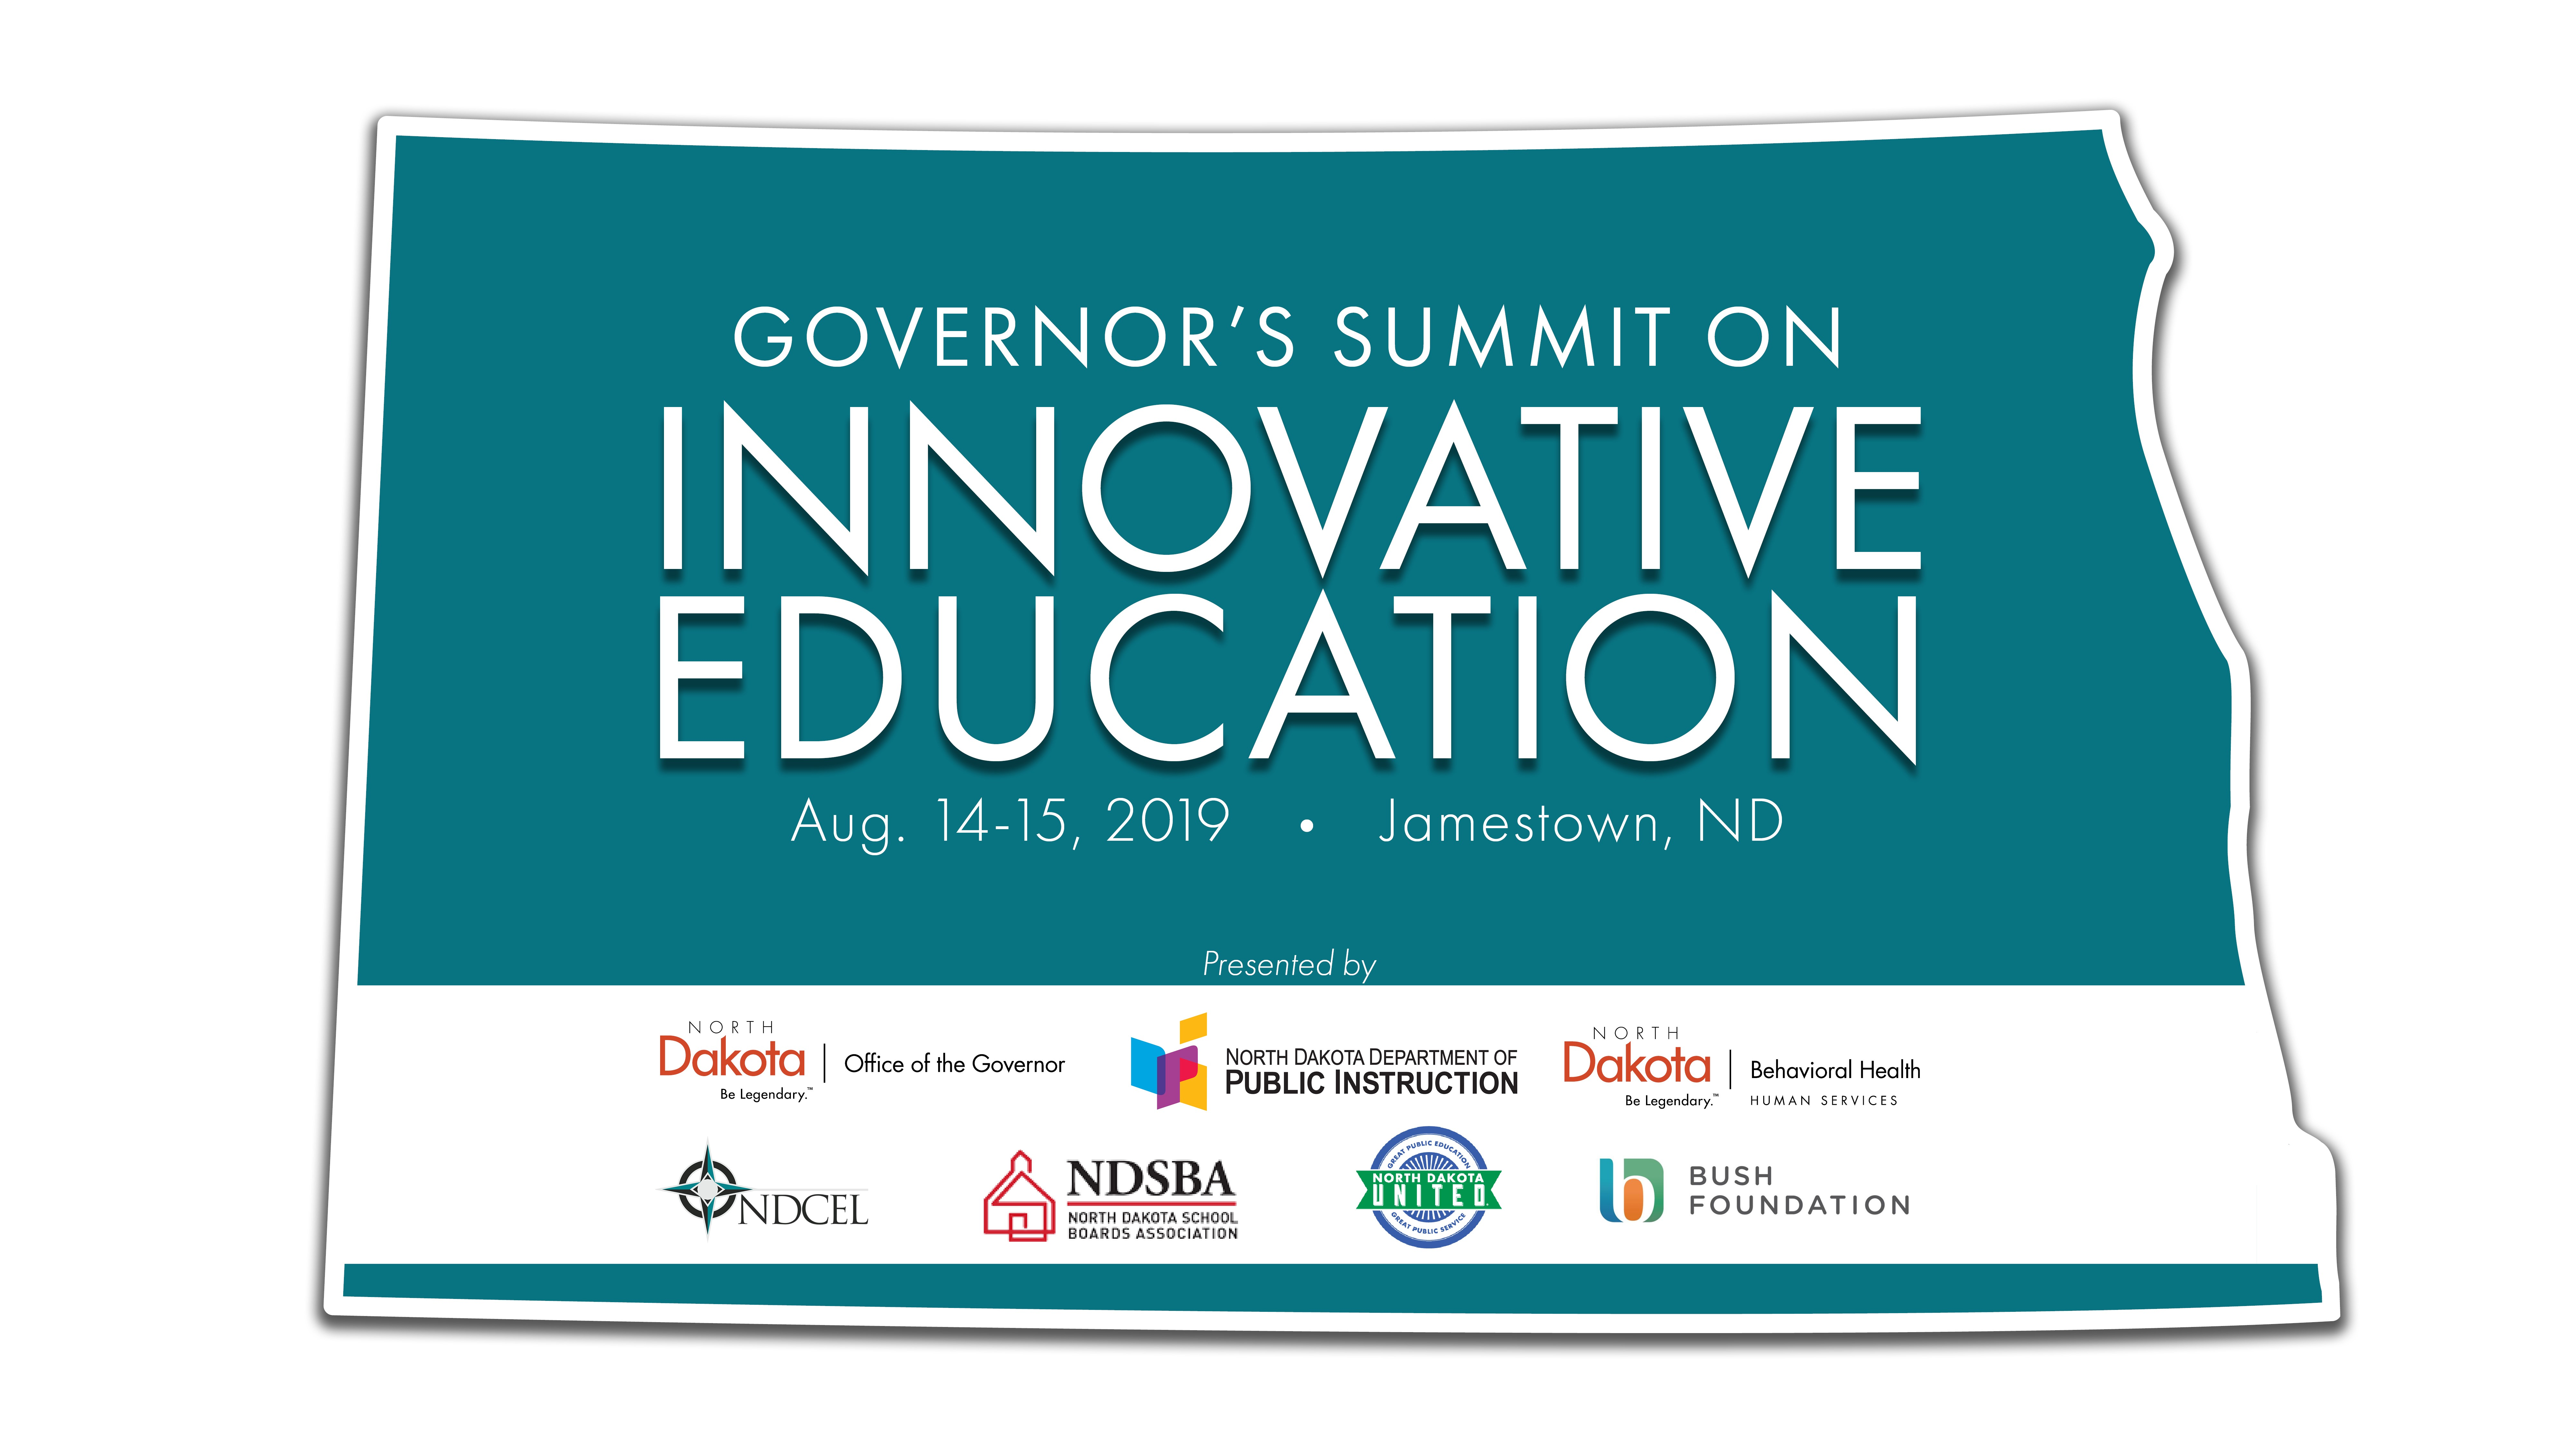 Governor's Summit on Innovative Education